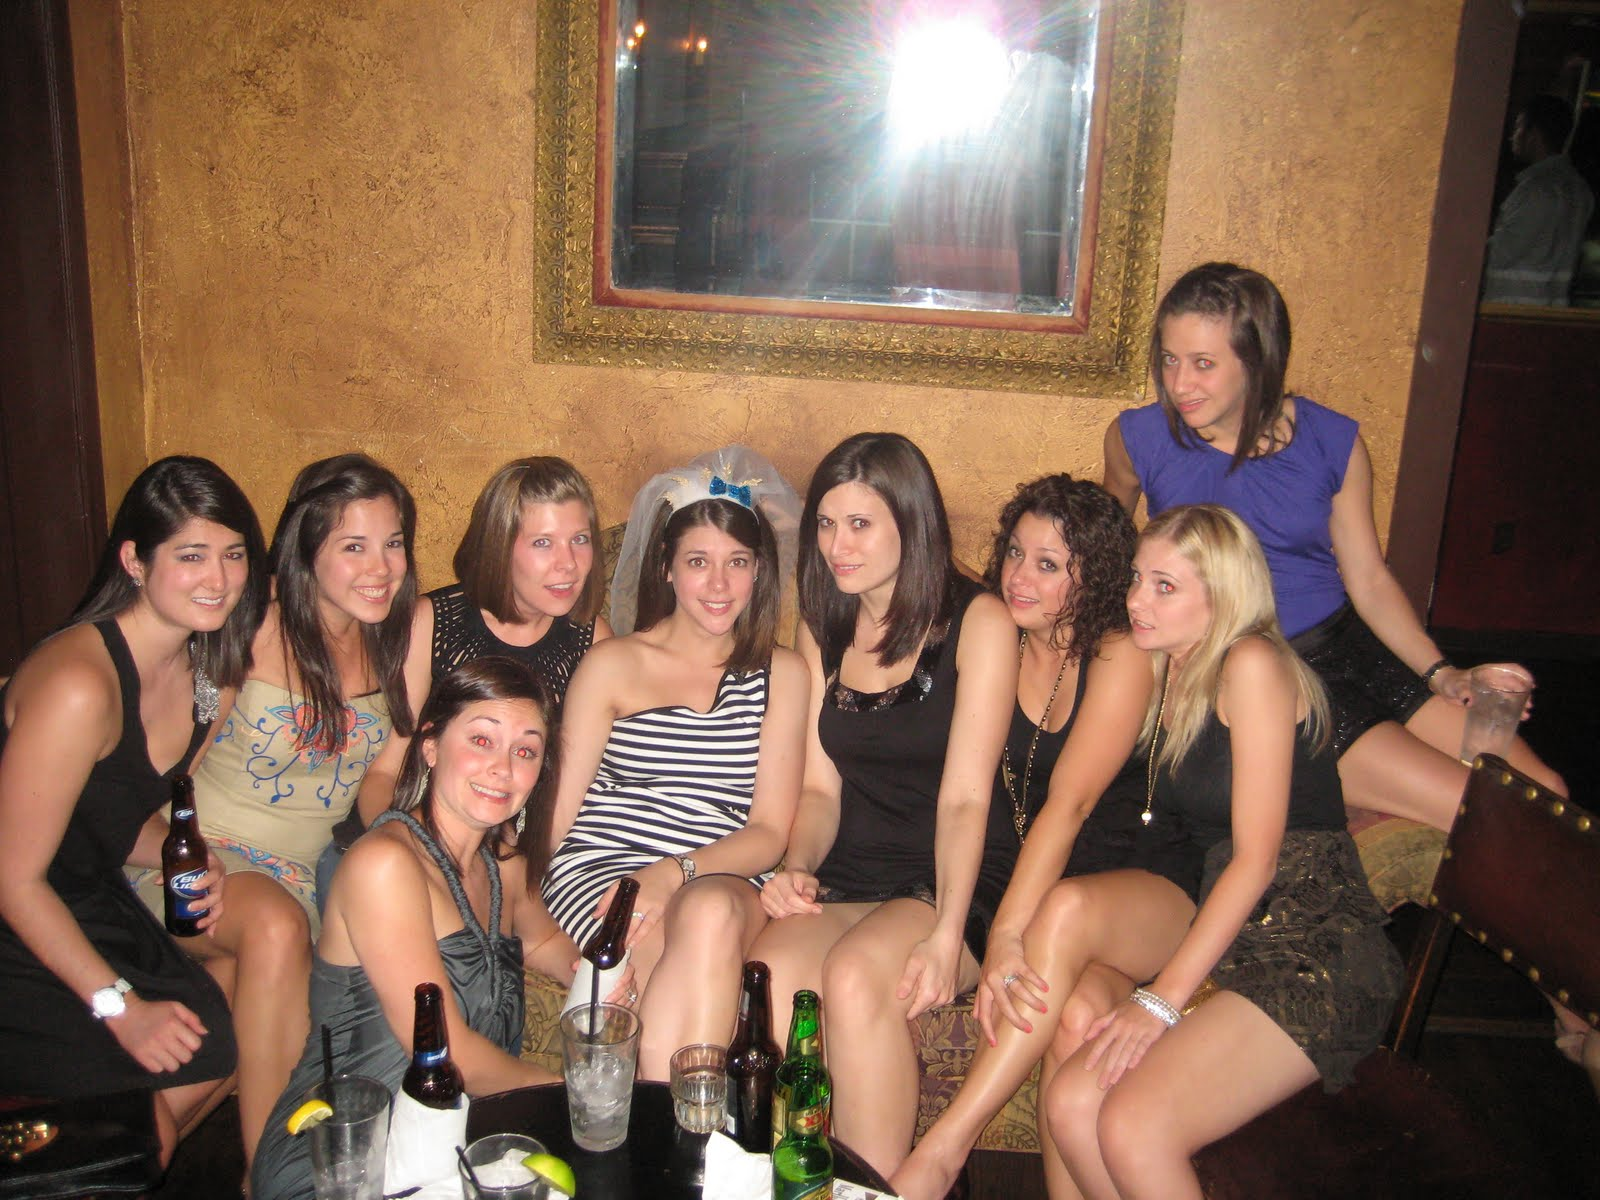 Group Of Nude Girls Pics